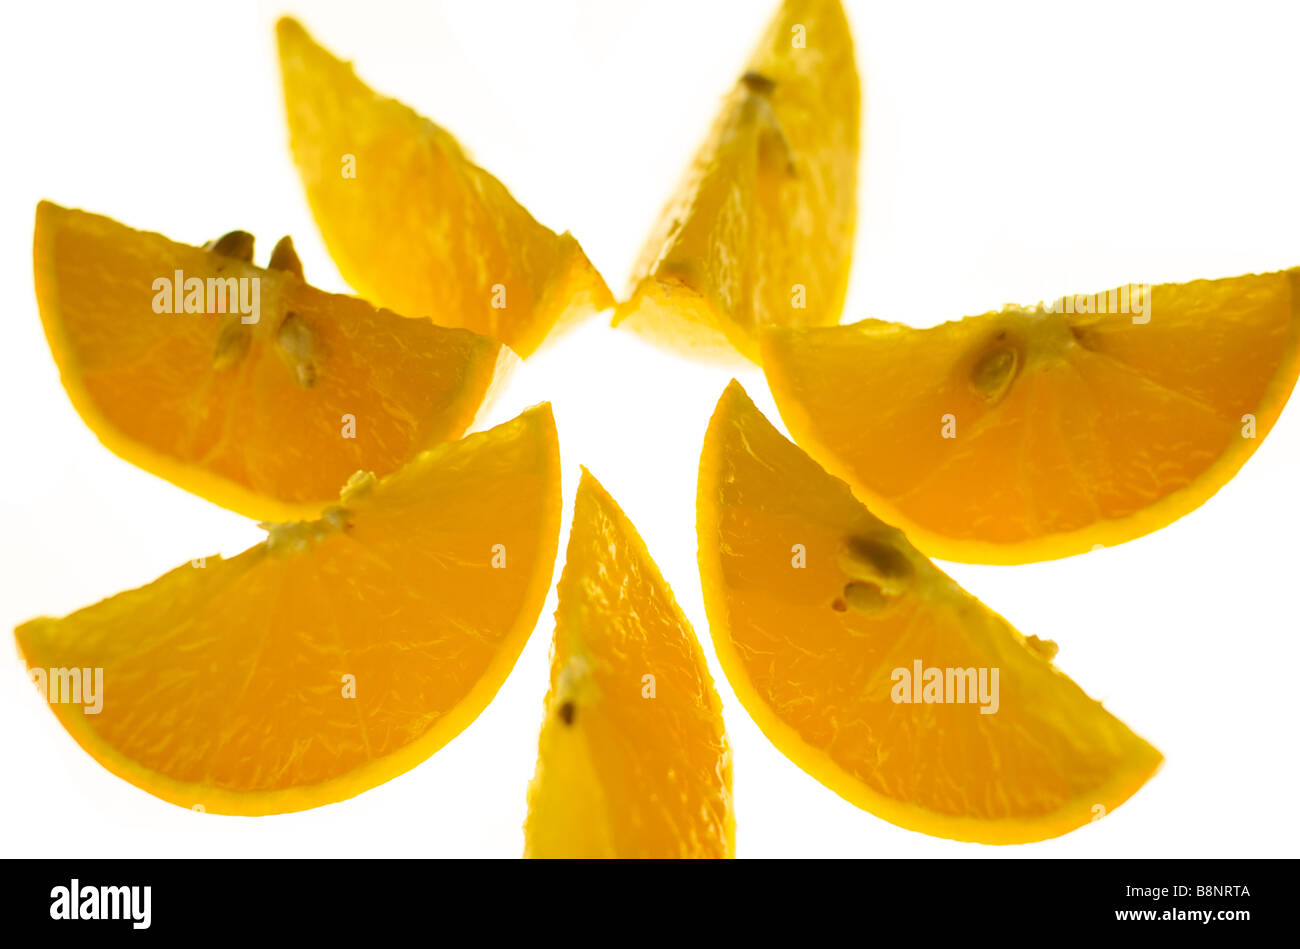 Orange Slices Arranged in a Circular Composition - Stock Image